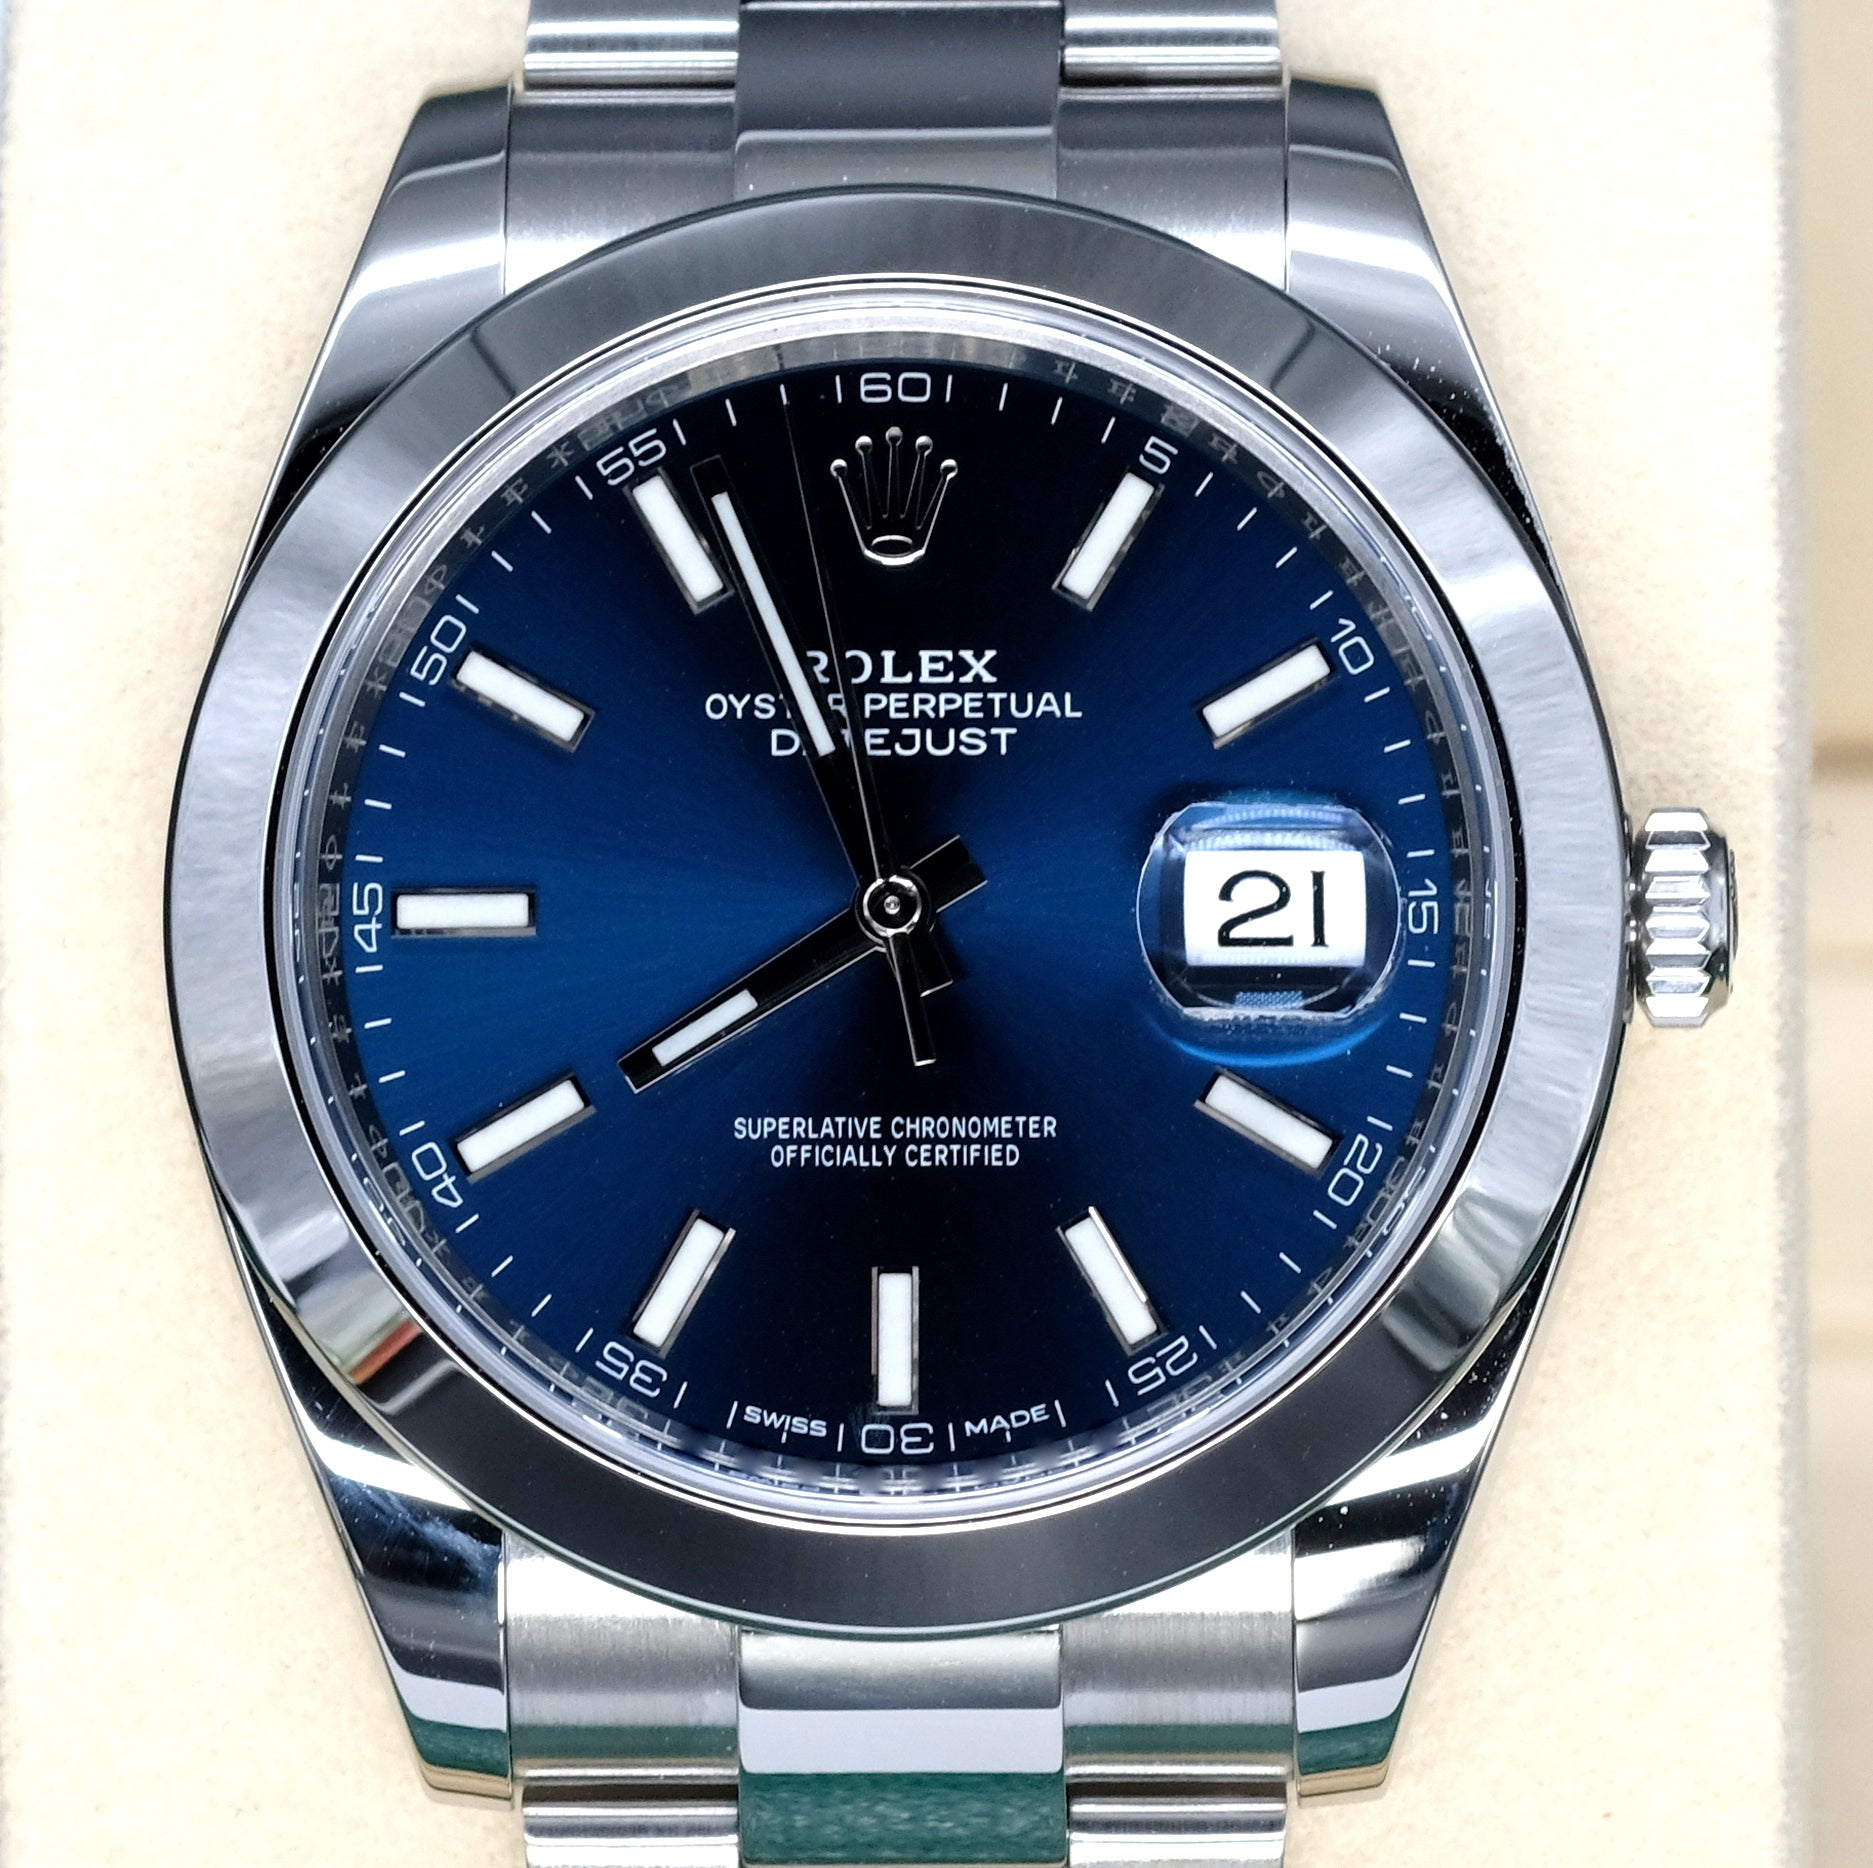 [Pre-Owned Watch] Rolex Datejust 41mm 126300 Blue Index Dial (Oyster Bracelet) (888)